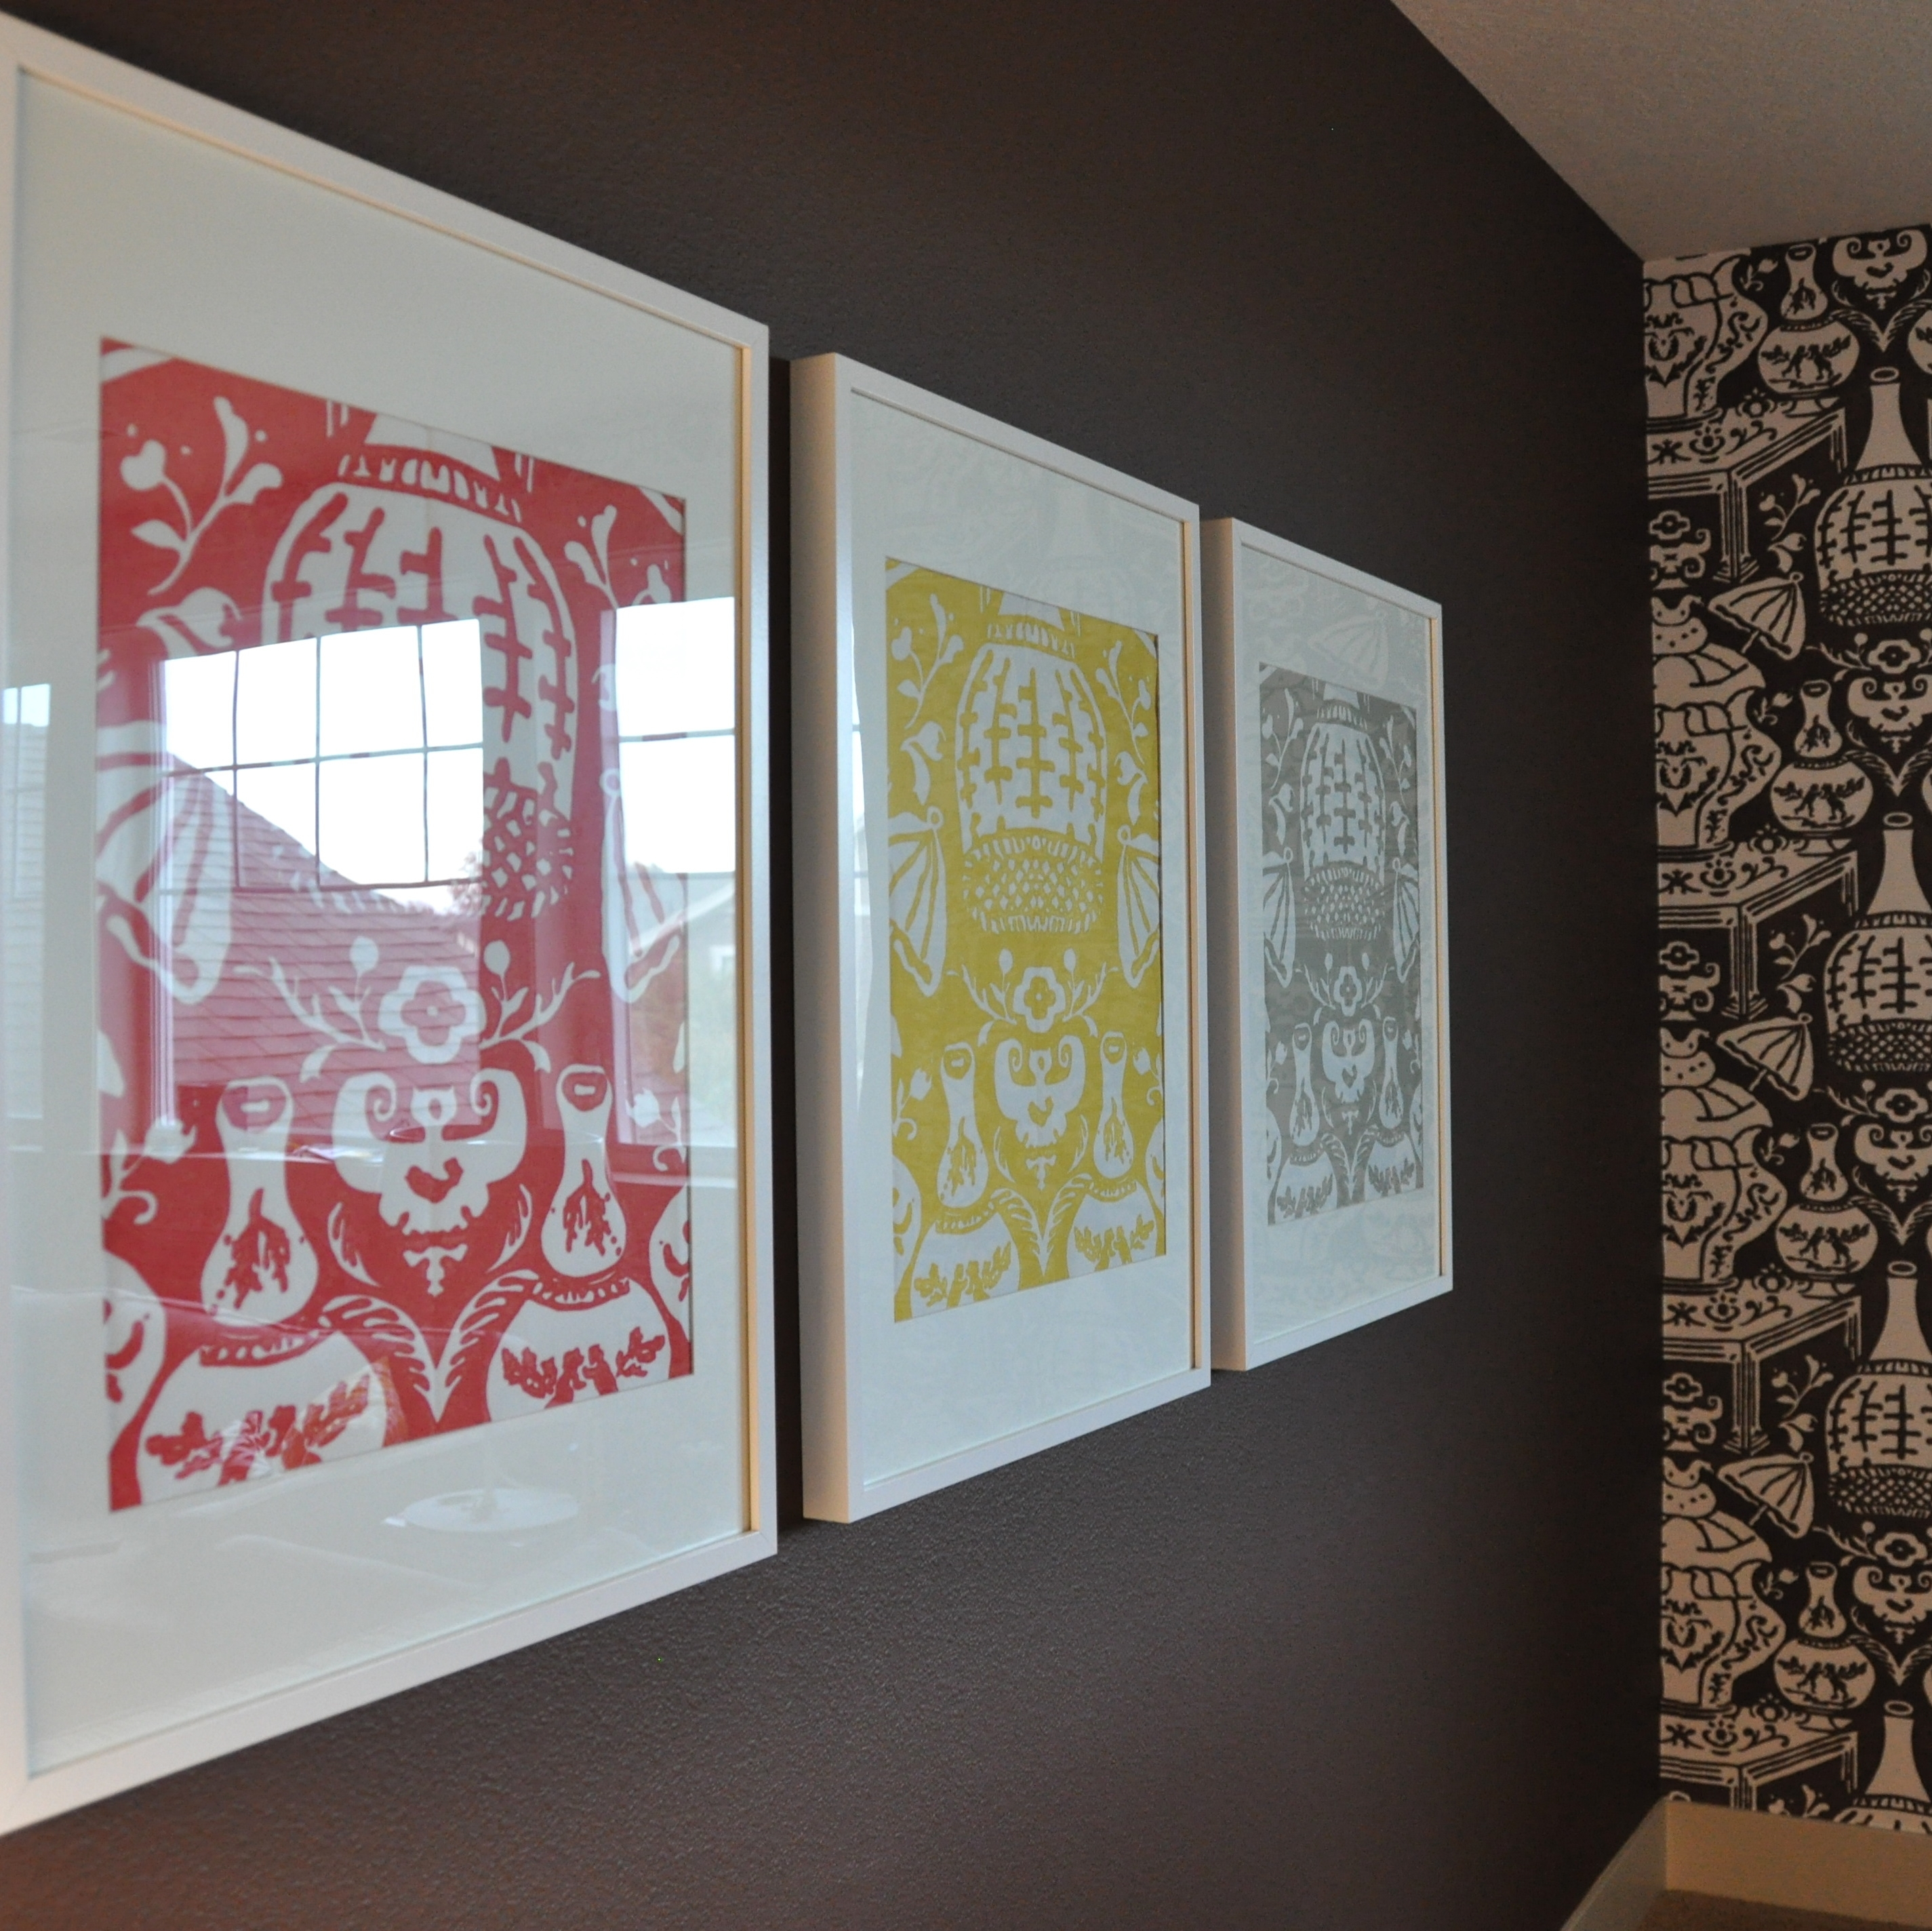 Wallpaper Samples In Ikea Ribba Frames = Simple & Fun Art! | Great With Regard To Most Current Fabric Swatch Wall Art (View 13 of 15)